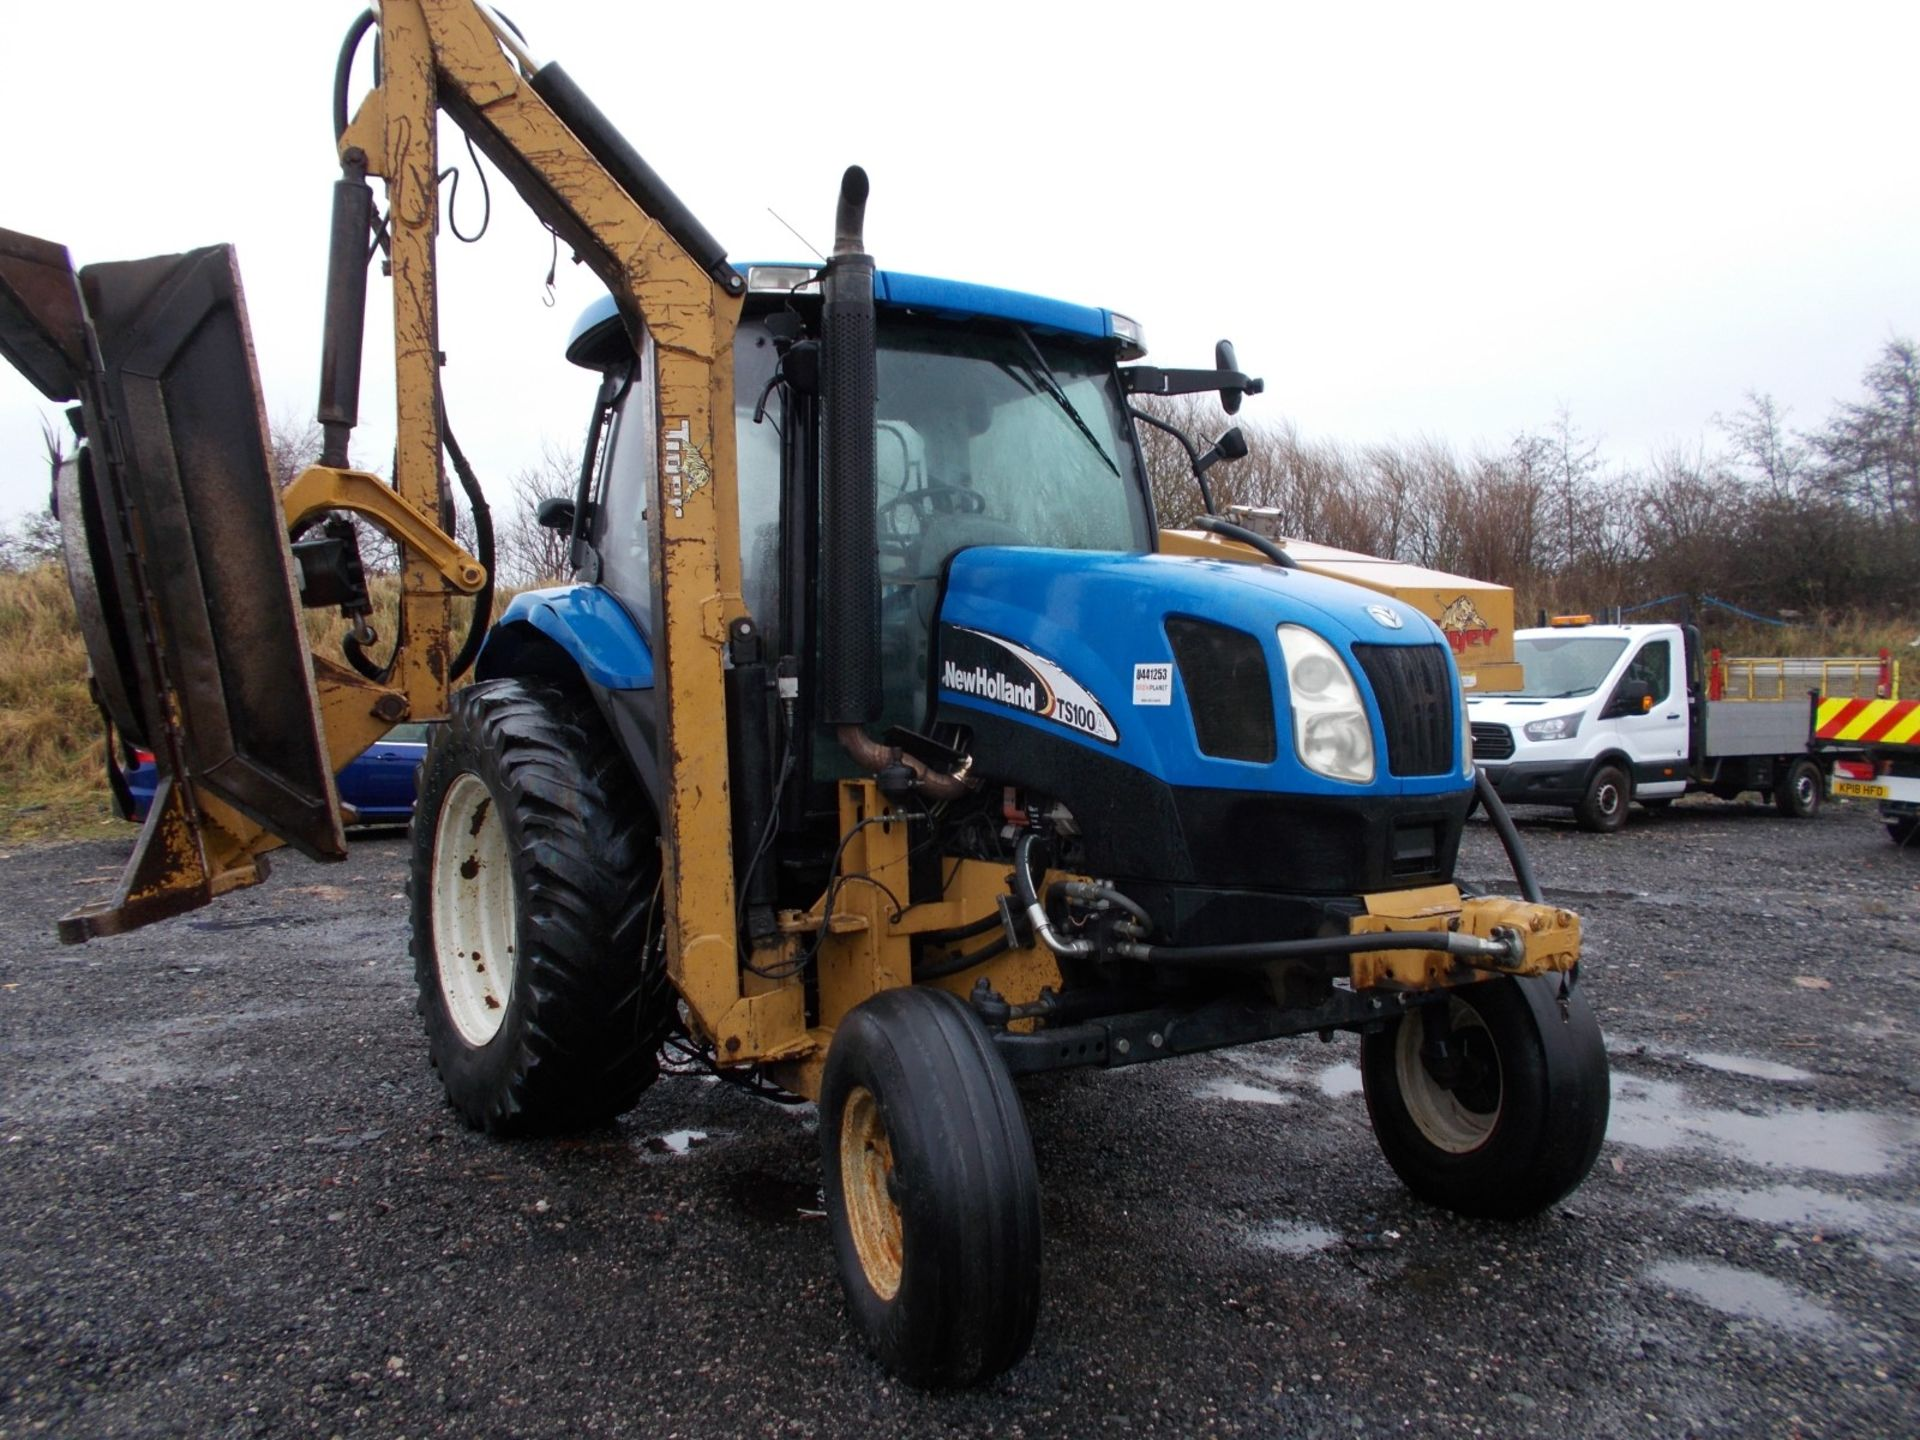 2003 NEW HOLLAND TS100A TRACTOR WITH MOWER ATTACHMENT, 4.5 LITRE 100HP TURBO DIESEL *PLUS VAT* - Image 13 of 24